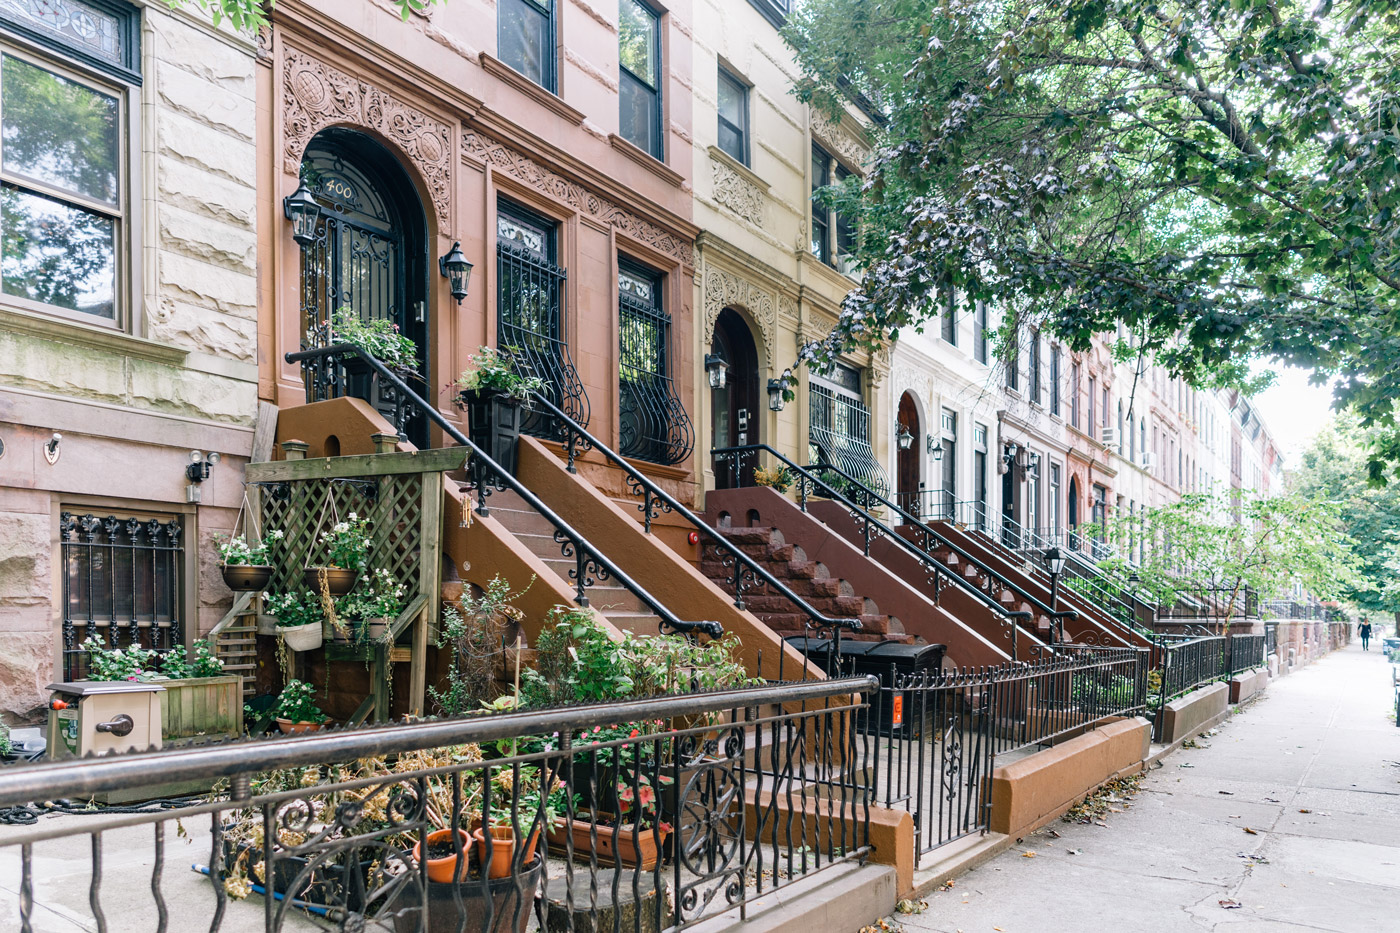 Brooklyn Q1 2019 - At the start of 2019, Brooklyn buyers faced still-lingering uncertainty in the market surrounding the effects of tax reform while sellers grappled with downward pressure on prices.Read the full report →